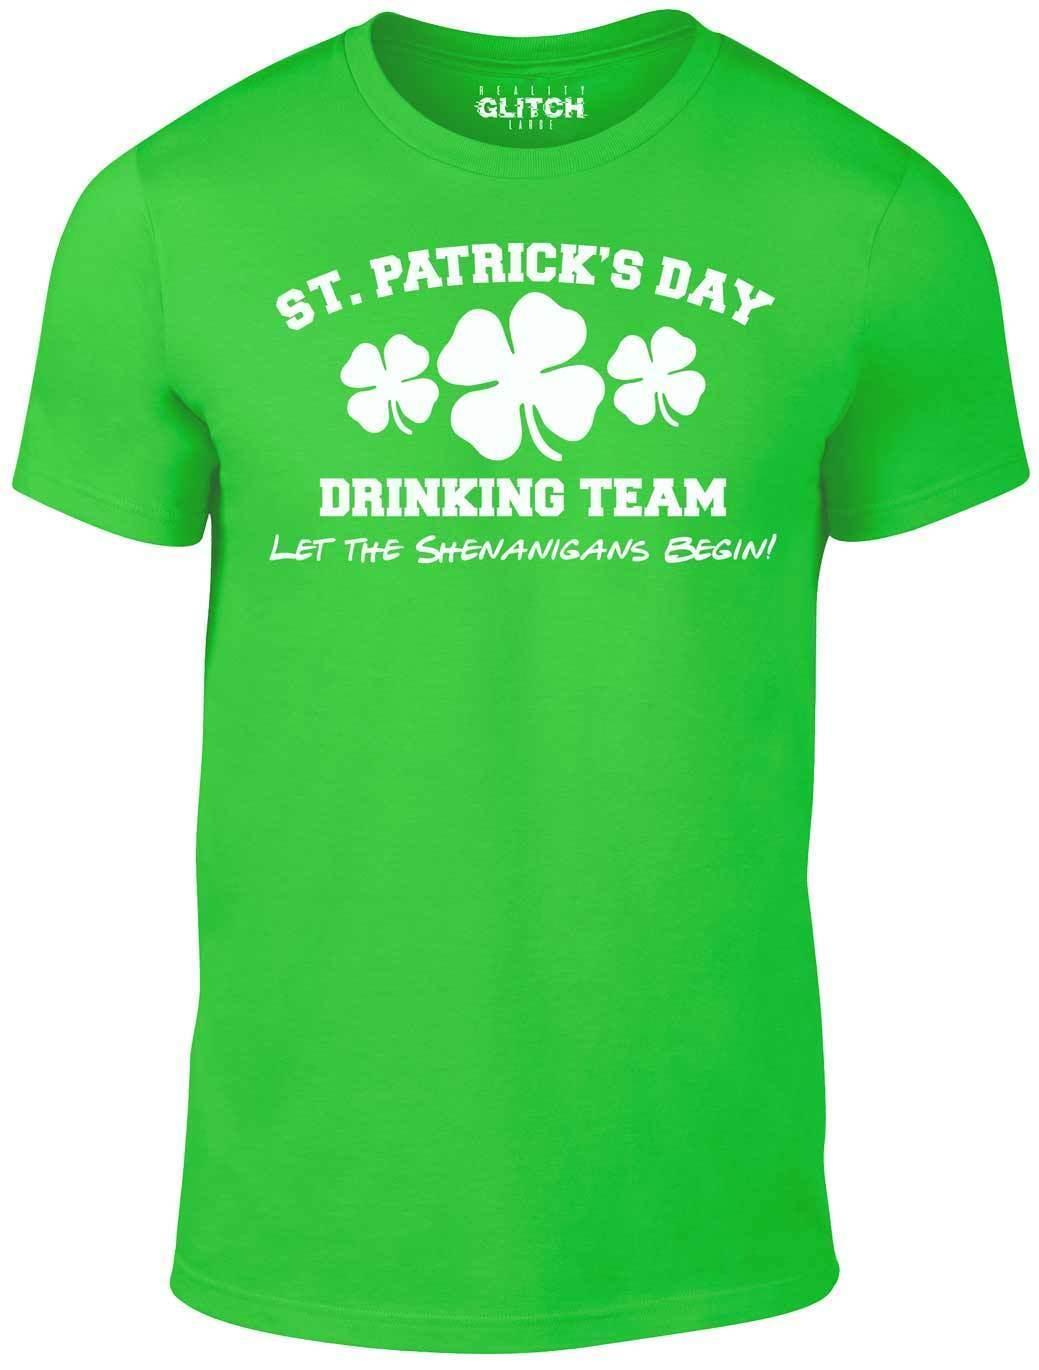 4e9c6265 Men's St. Patrick's Day Drinking Team T-Shirt - gift funny Ireland joke  Irish